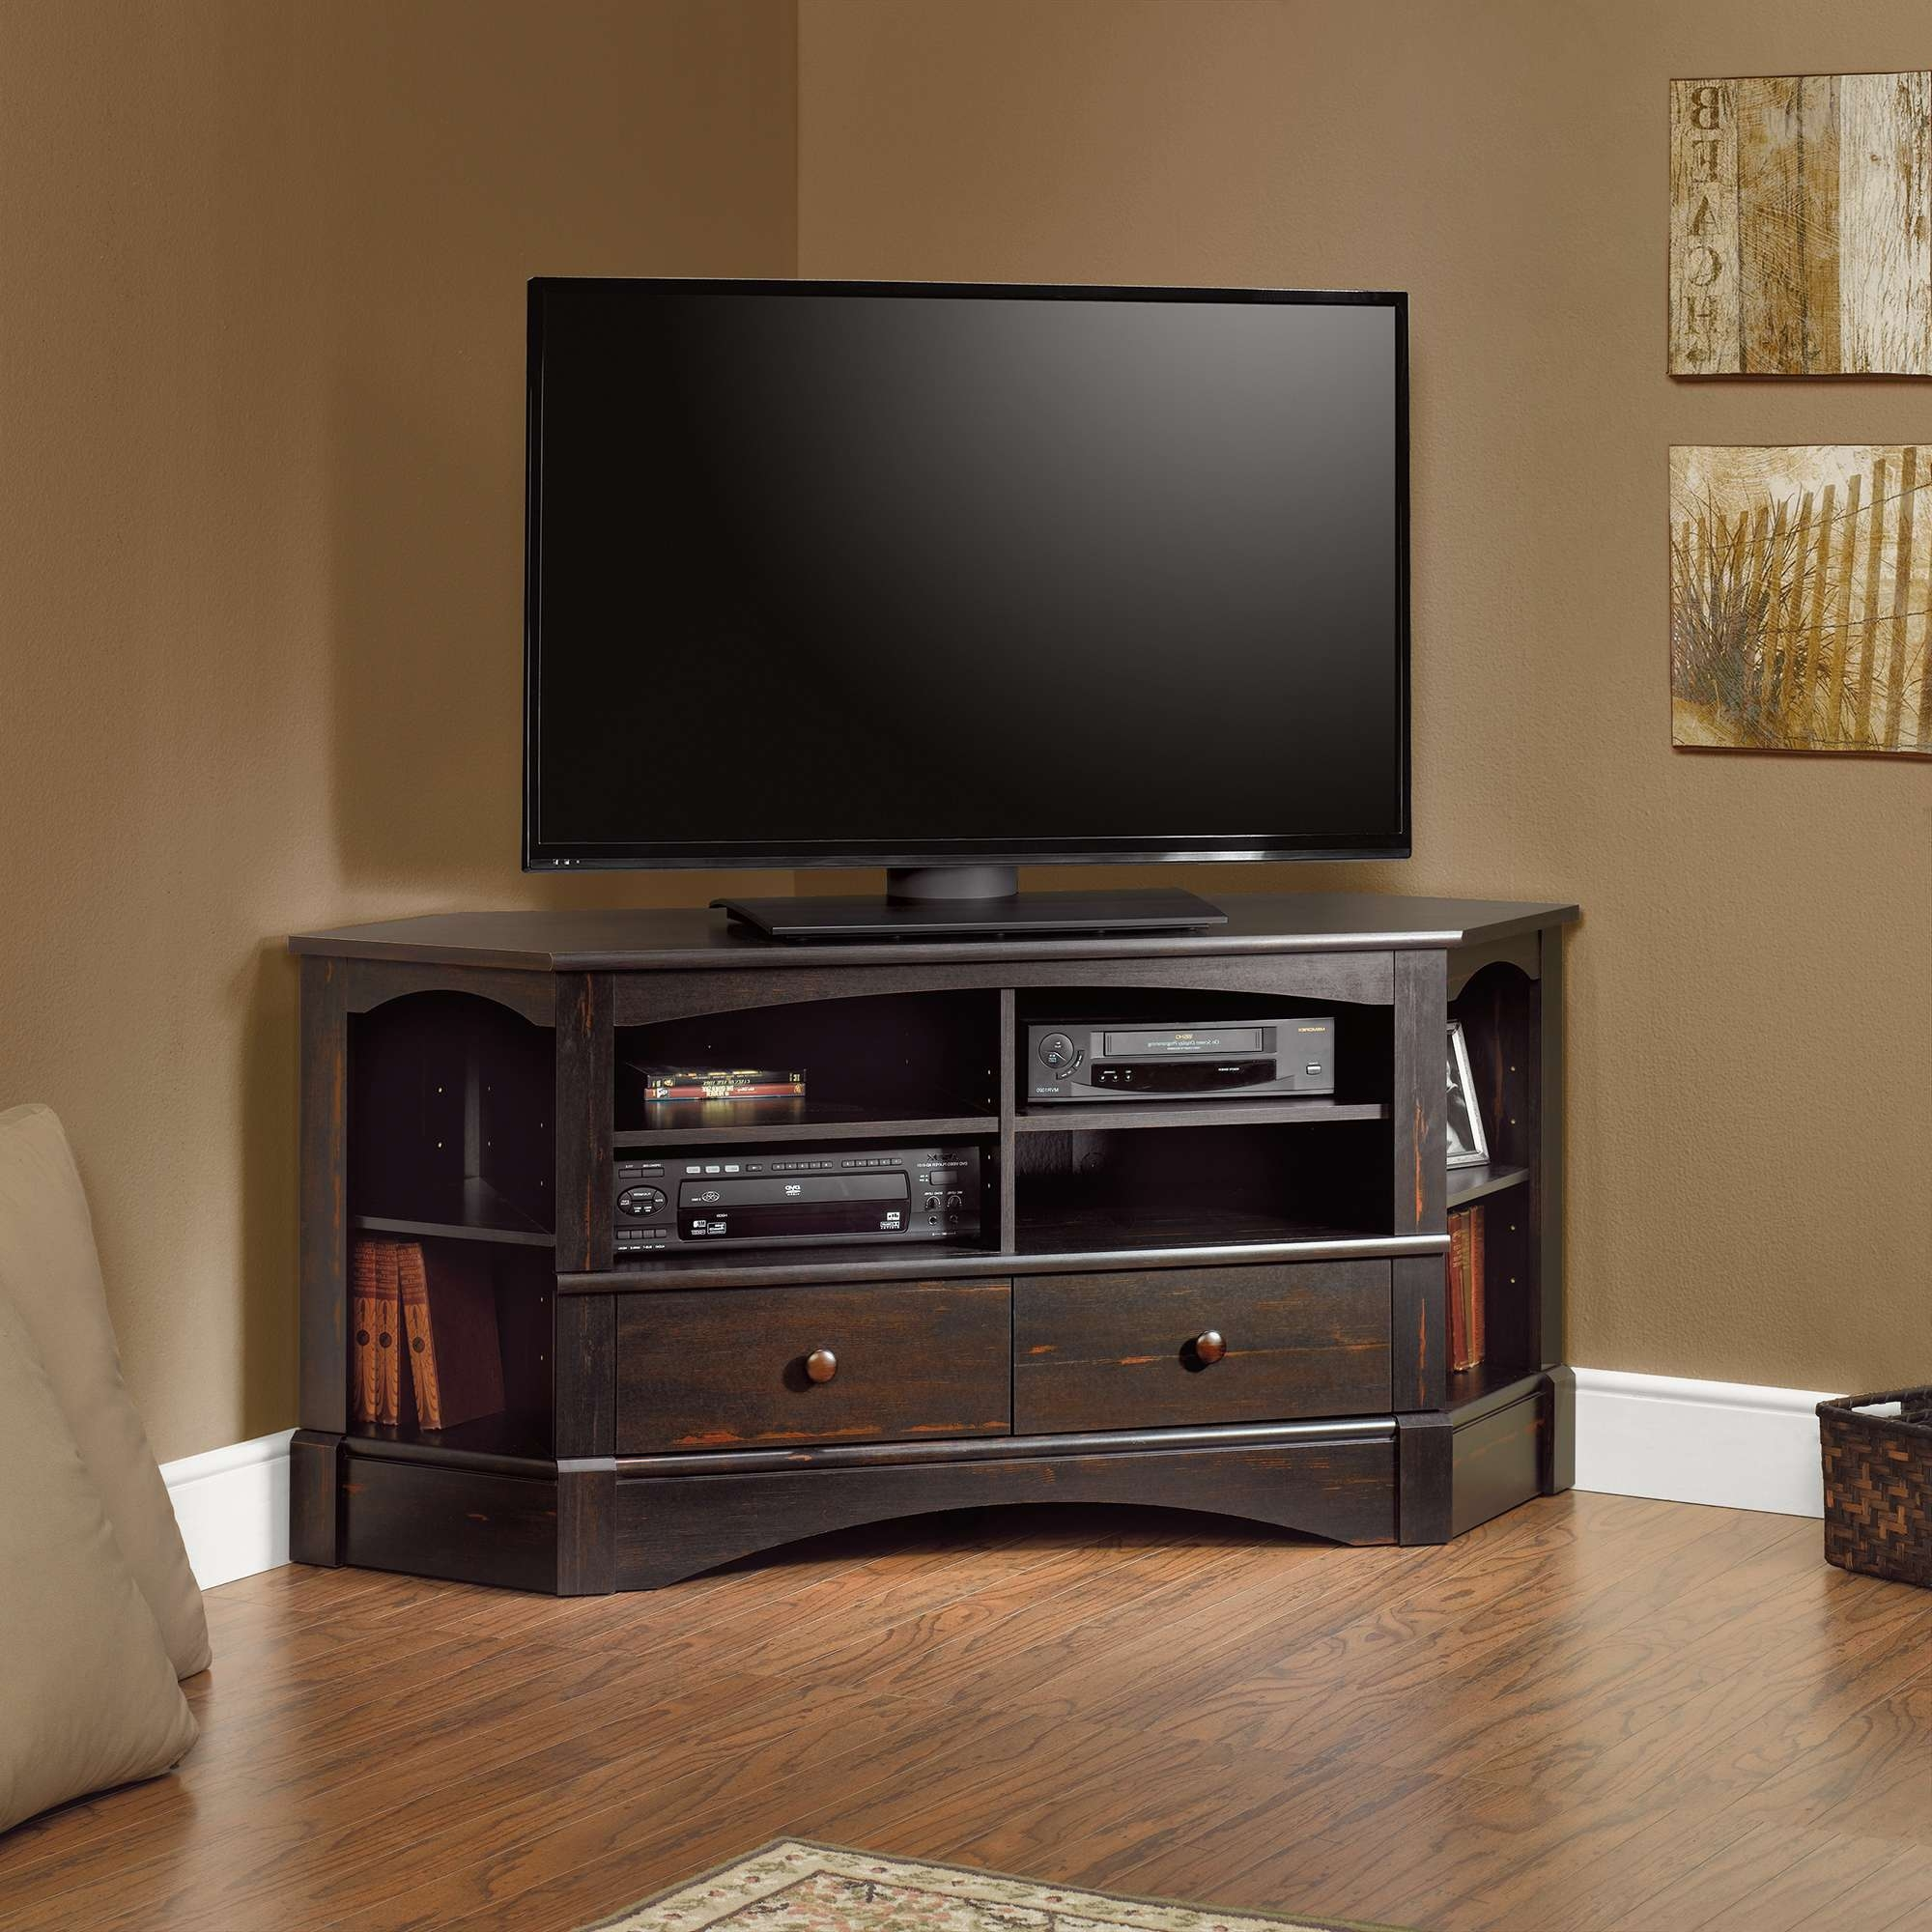 Harbor View | Corner Entertainment Credenza | 402902 | Sauder In Corner 60 Inch Tv Stands (View 8 of 15)